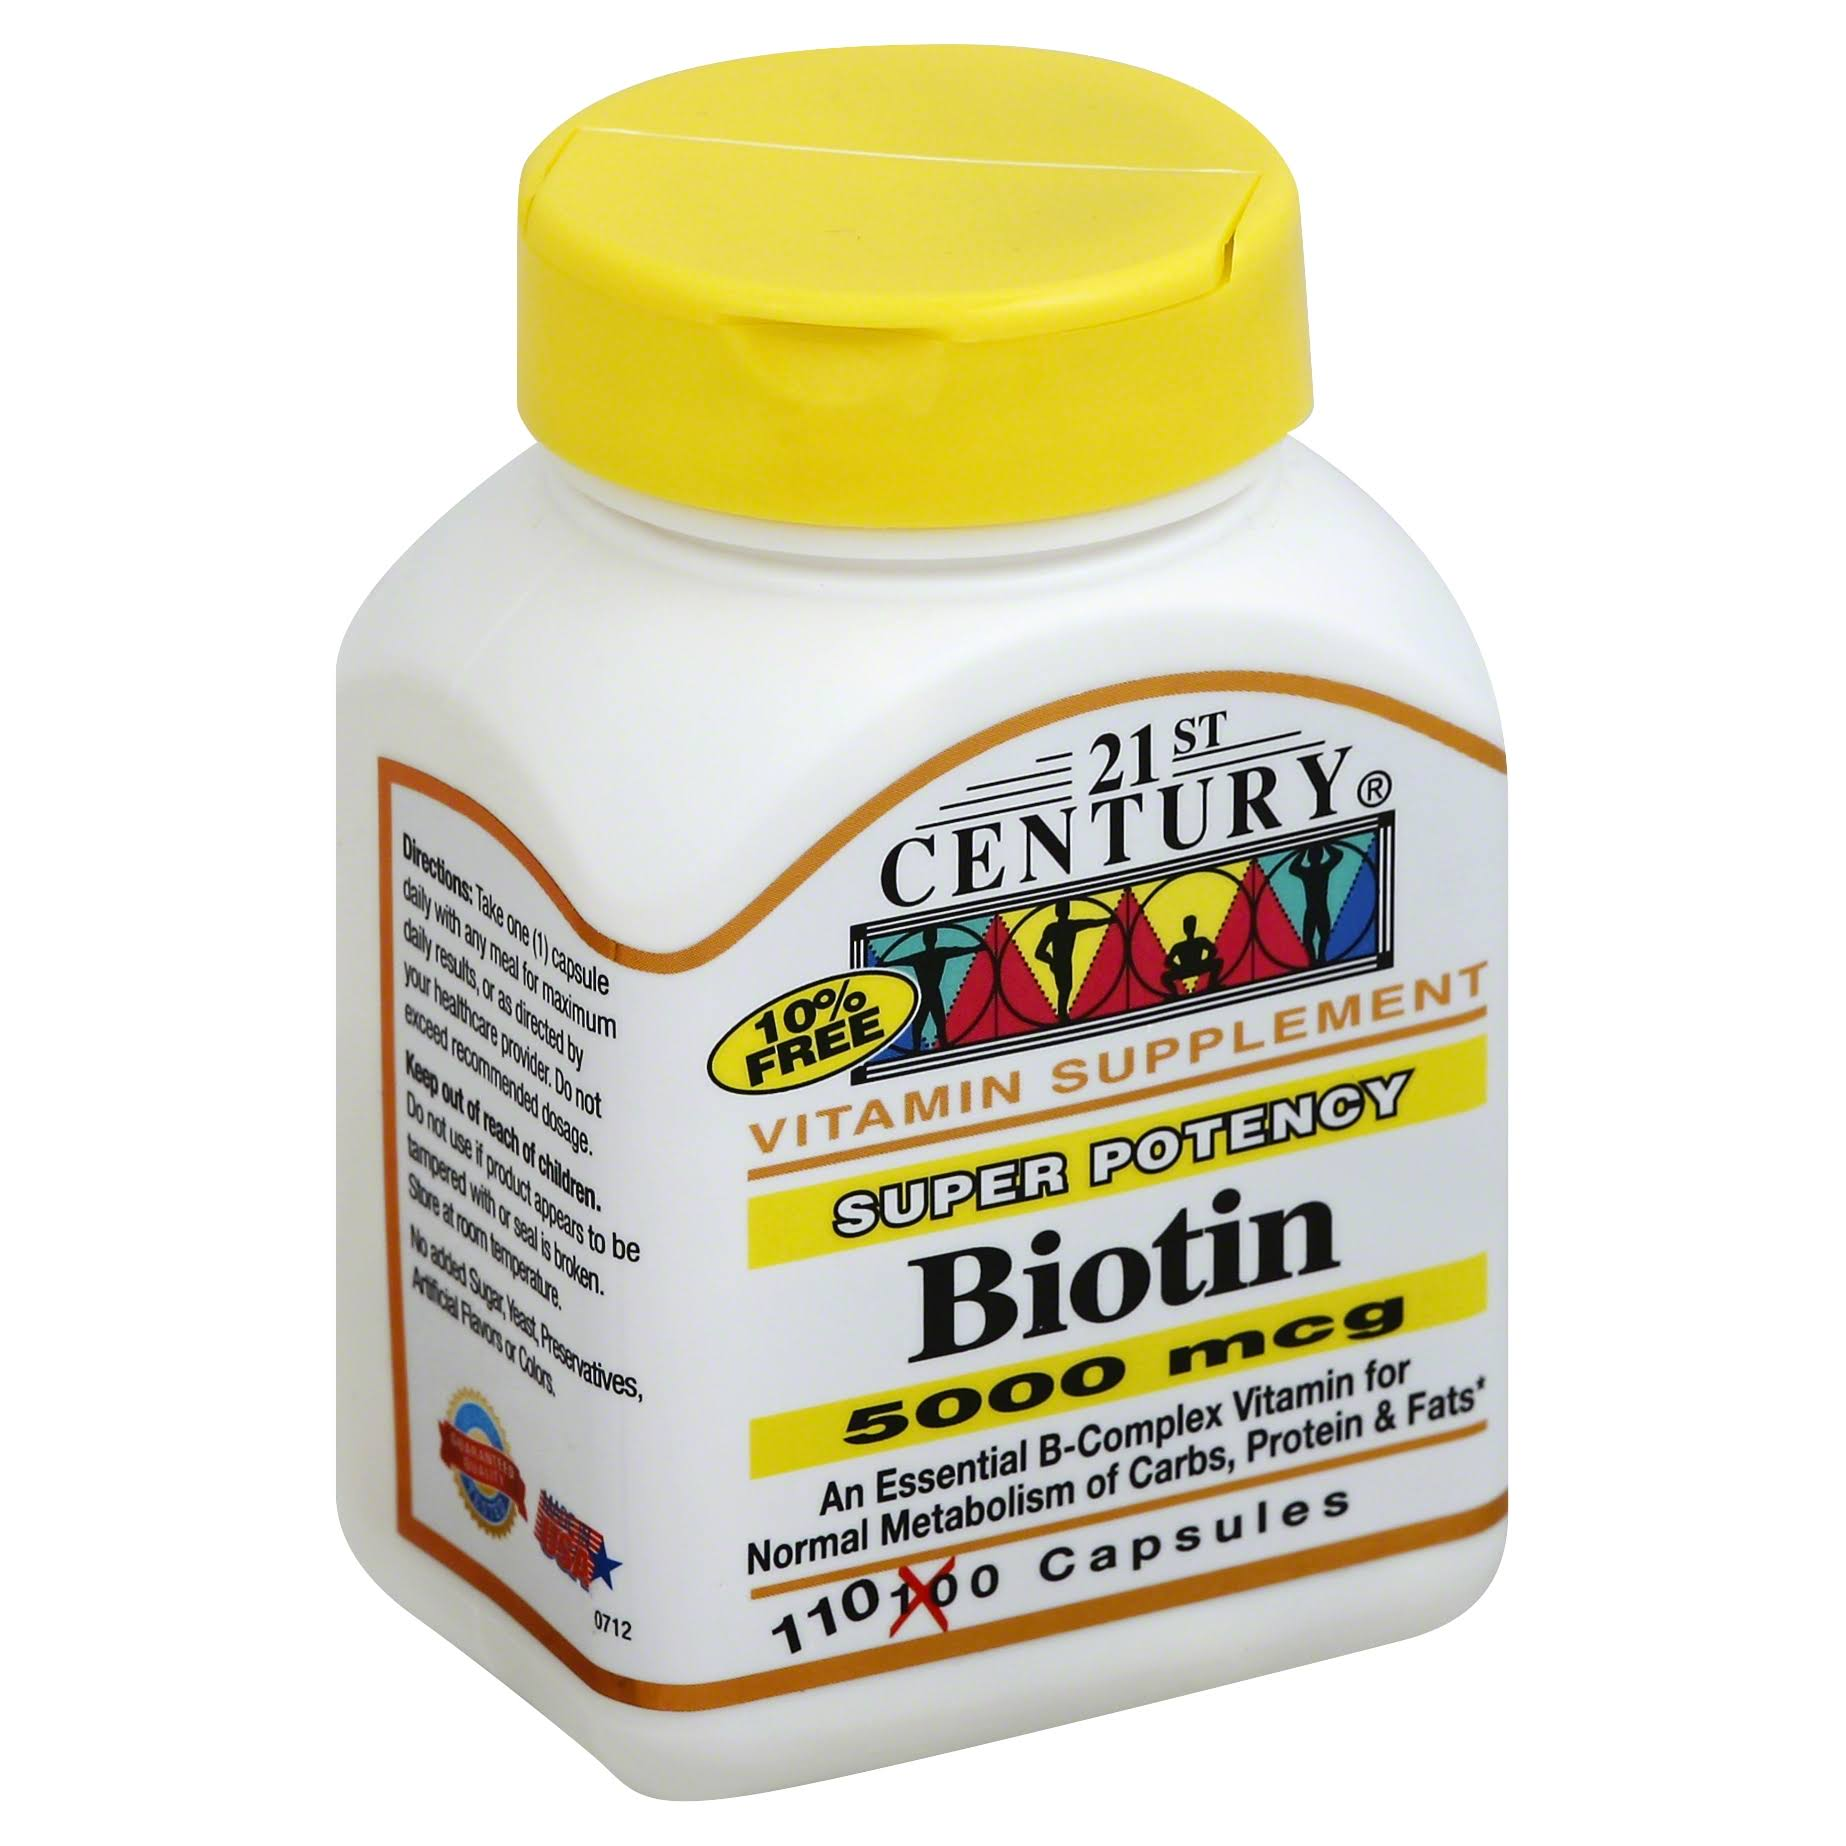 21st Century Biotin Vitamin Supplement - 5000mcg, 110ct